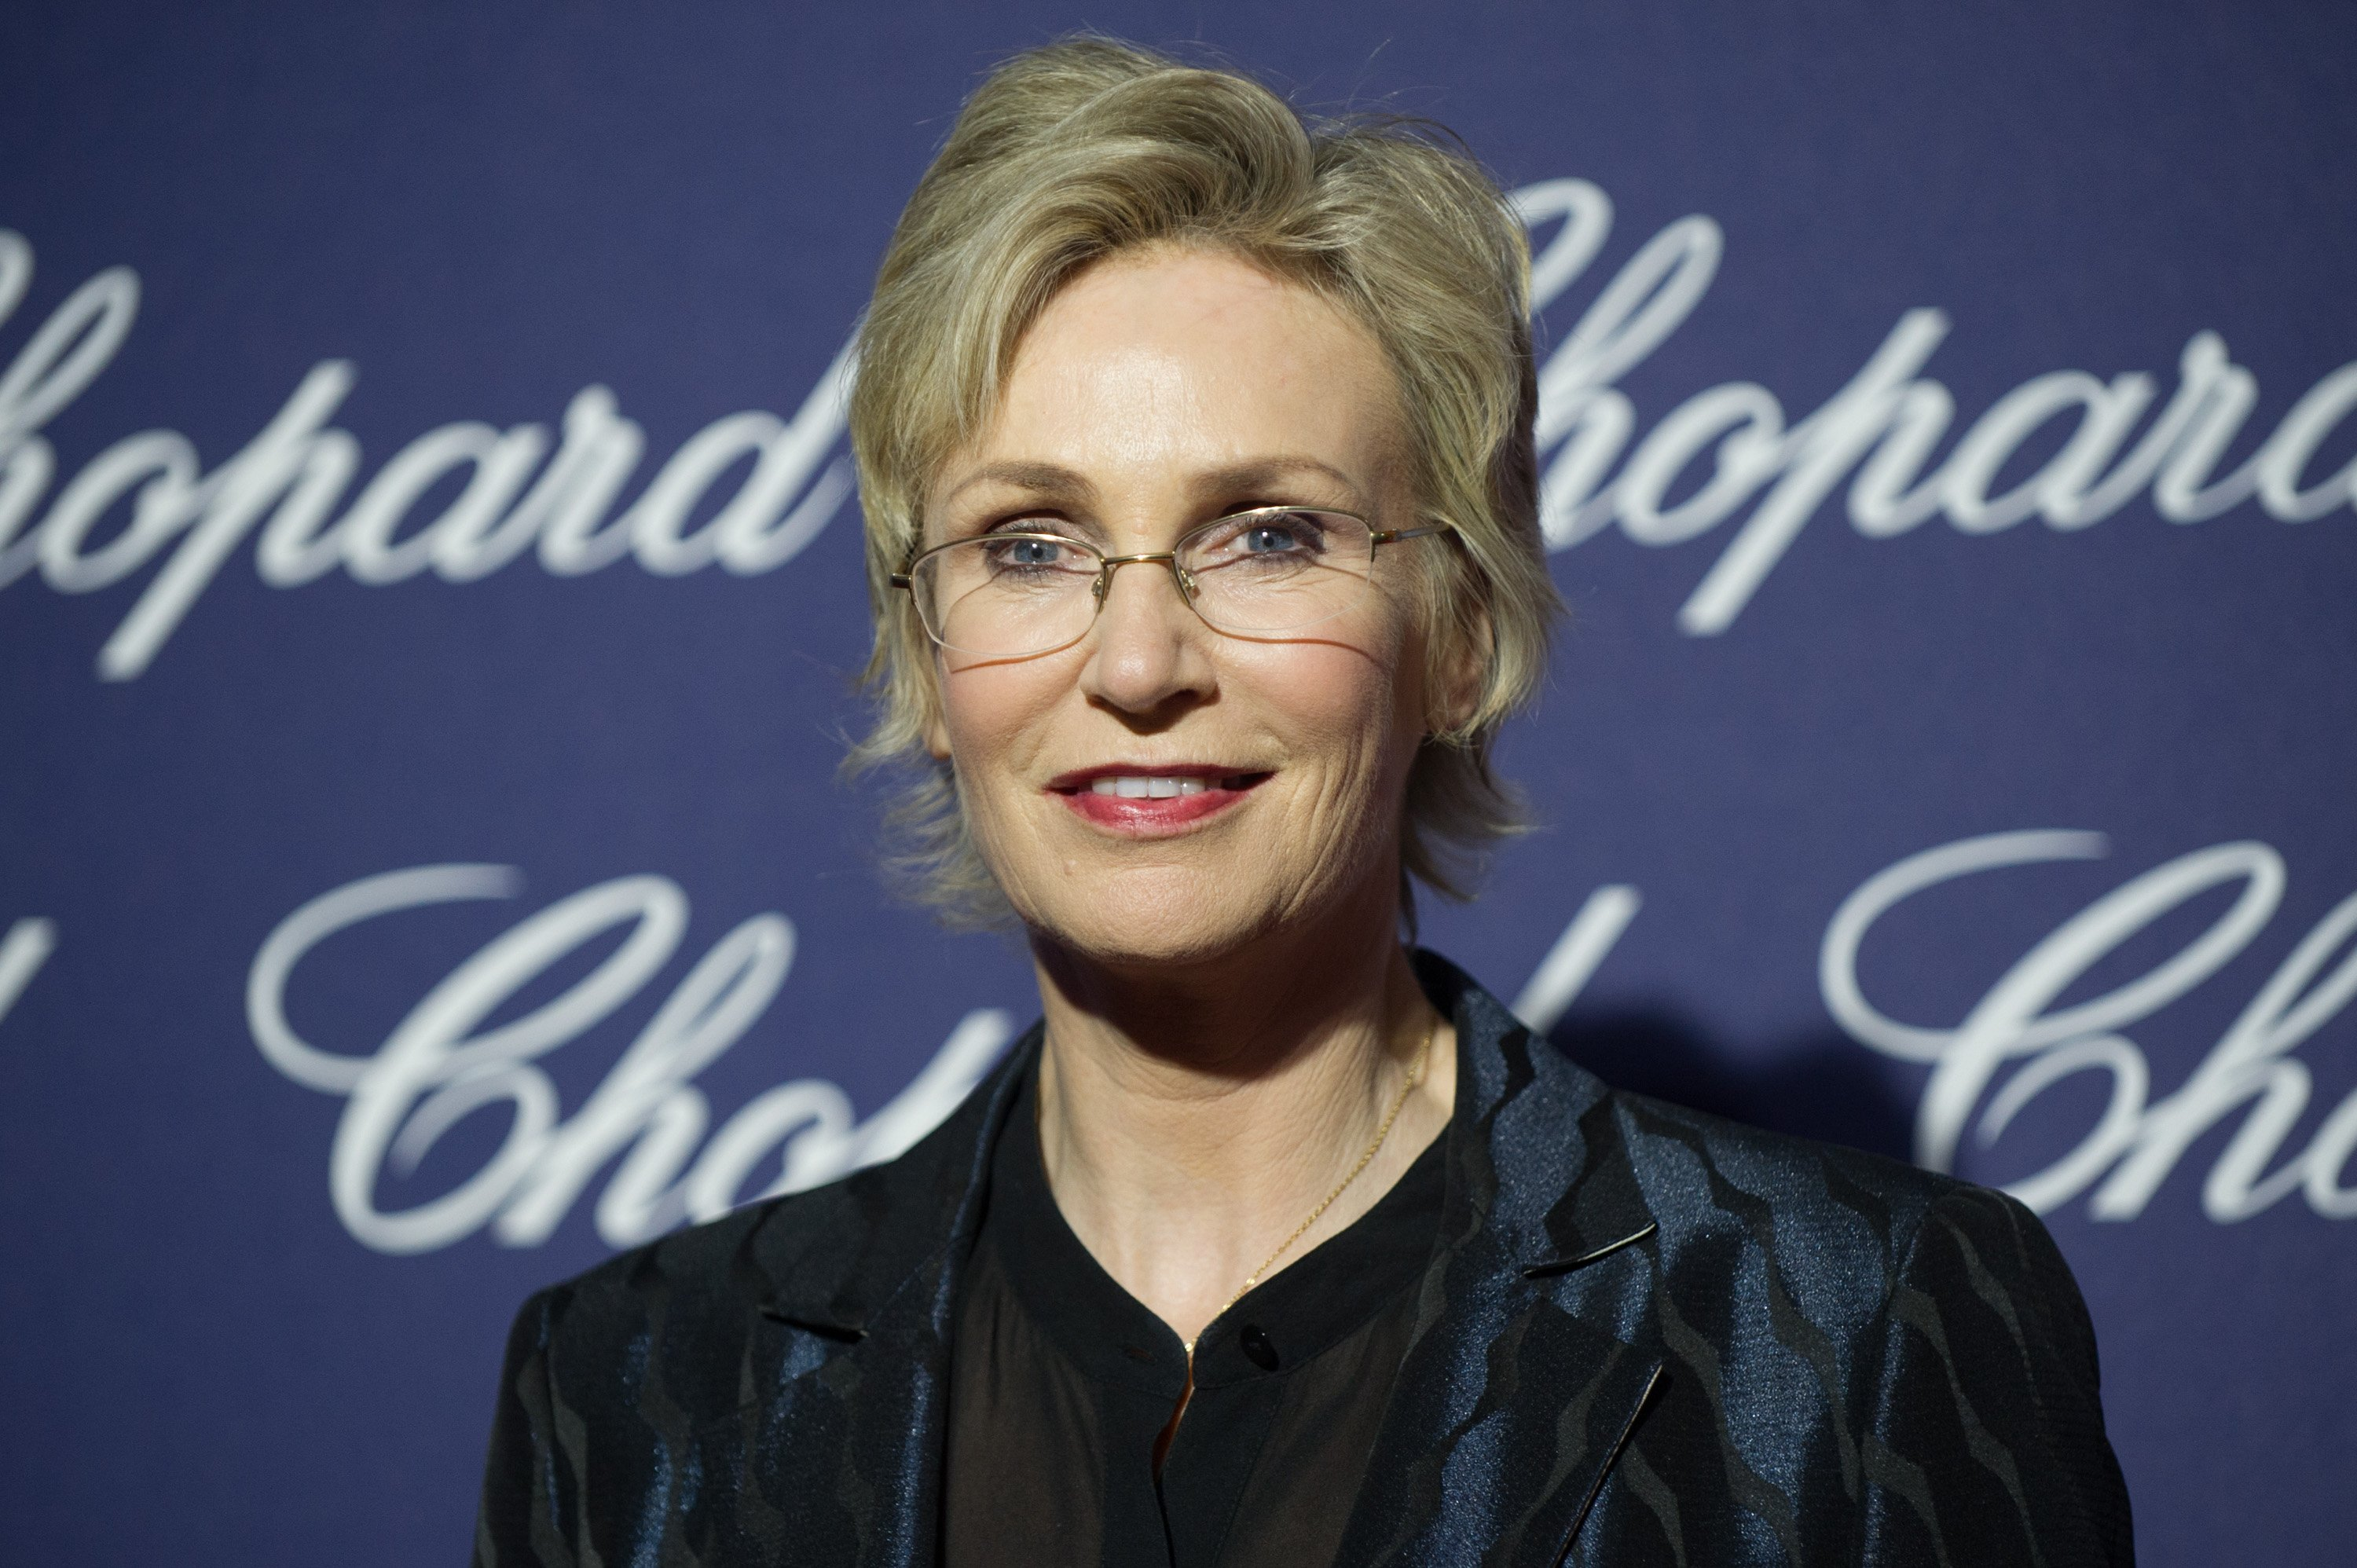 Jane Lynch attends the Annual Palm Springs International Film Festival Film Awards in California on Janaury 2, 2017   Photo: Getty Images